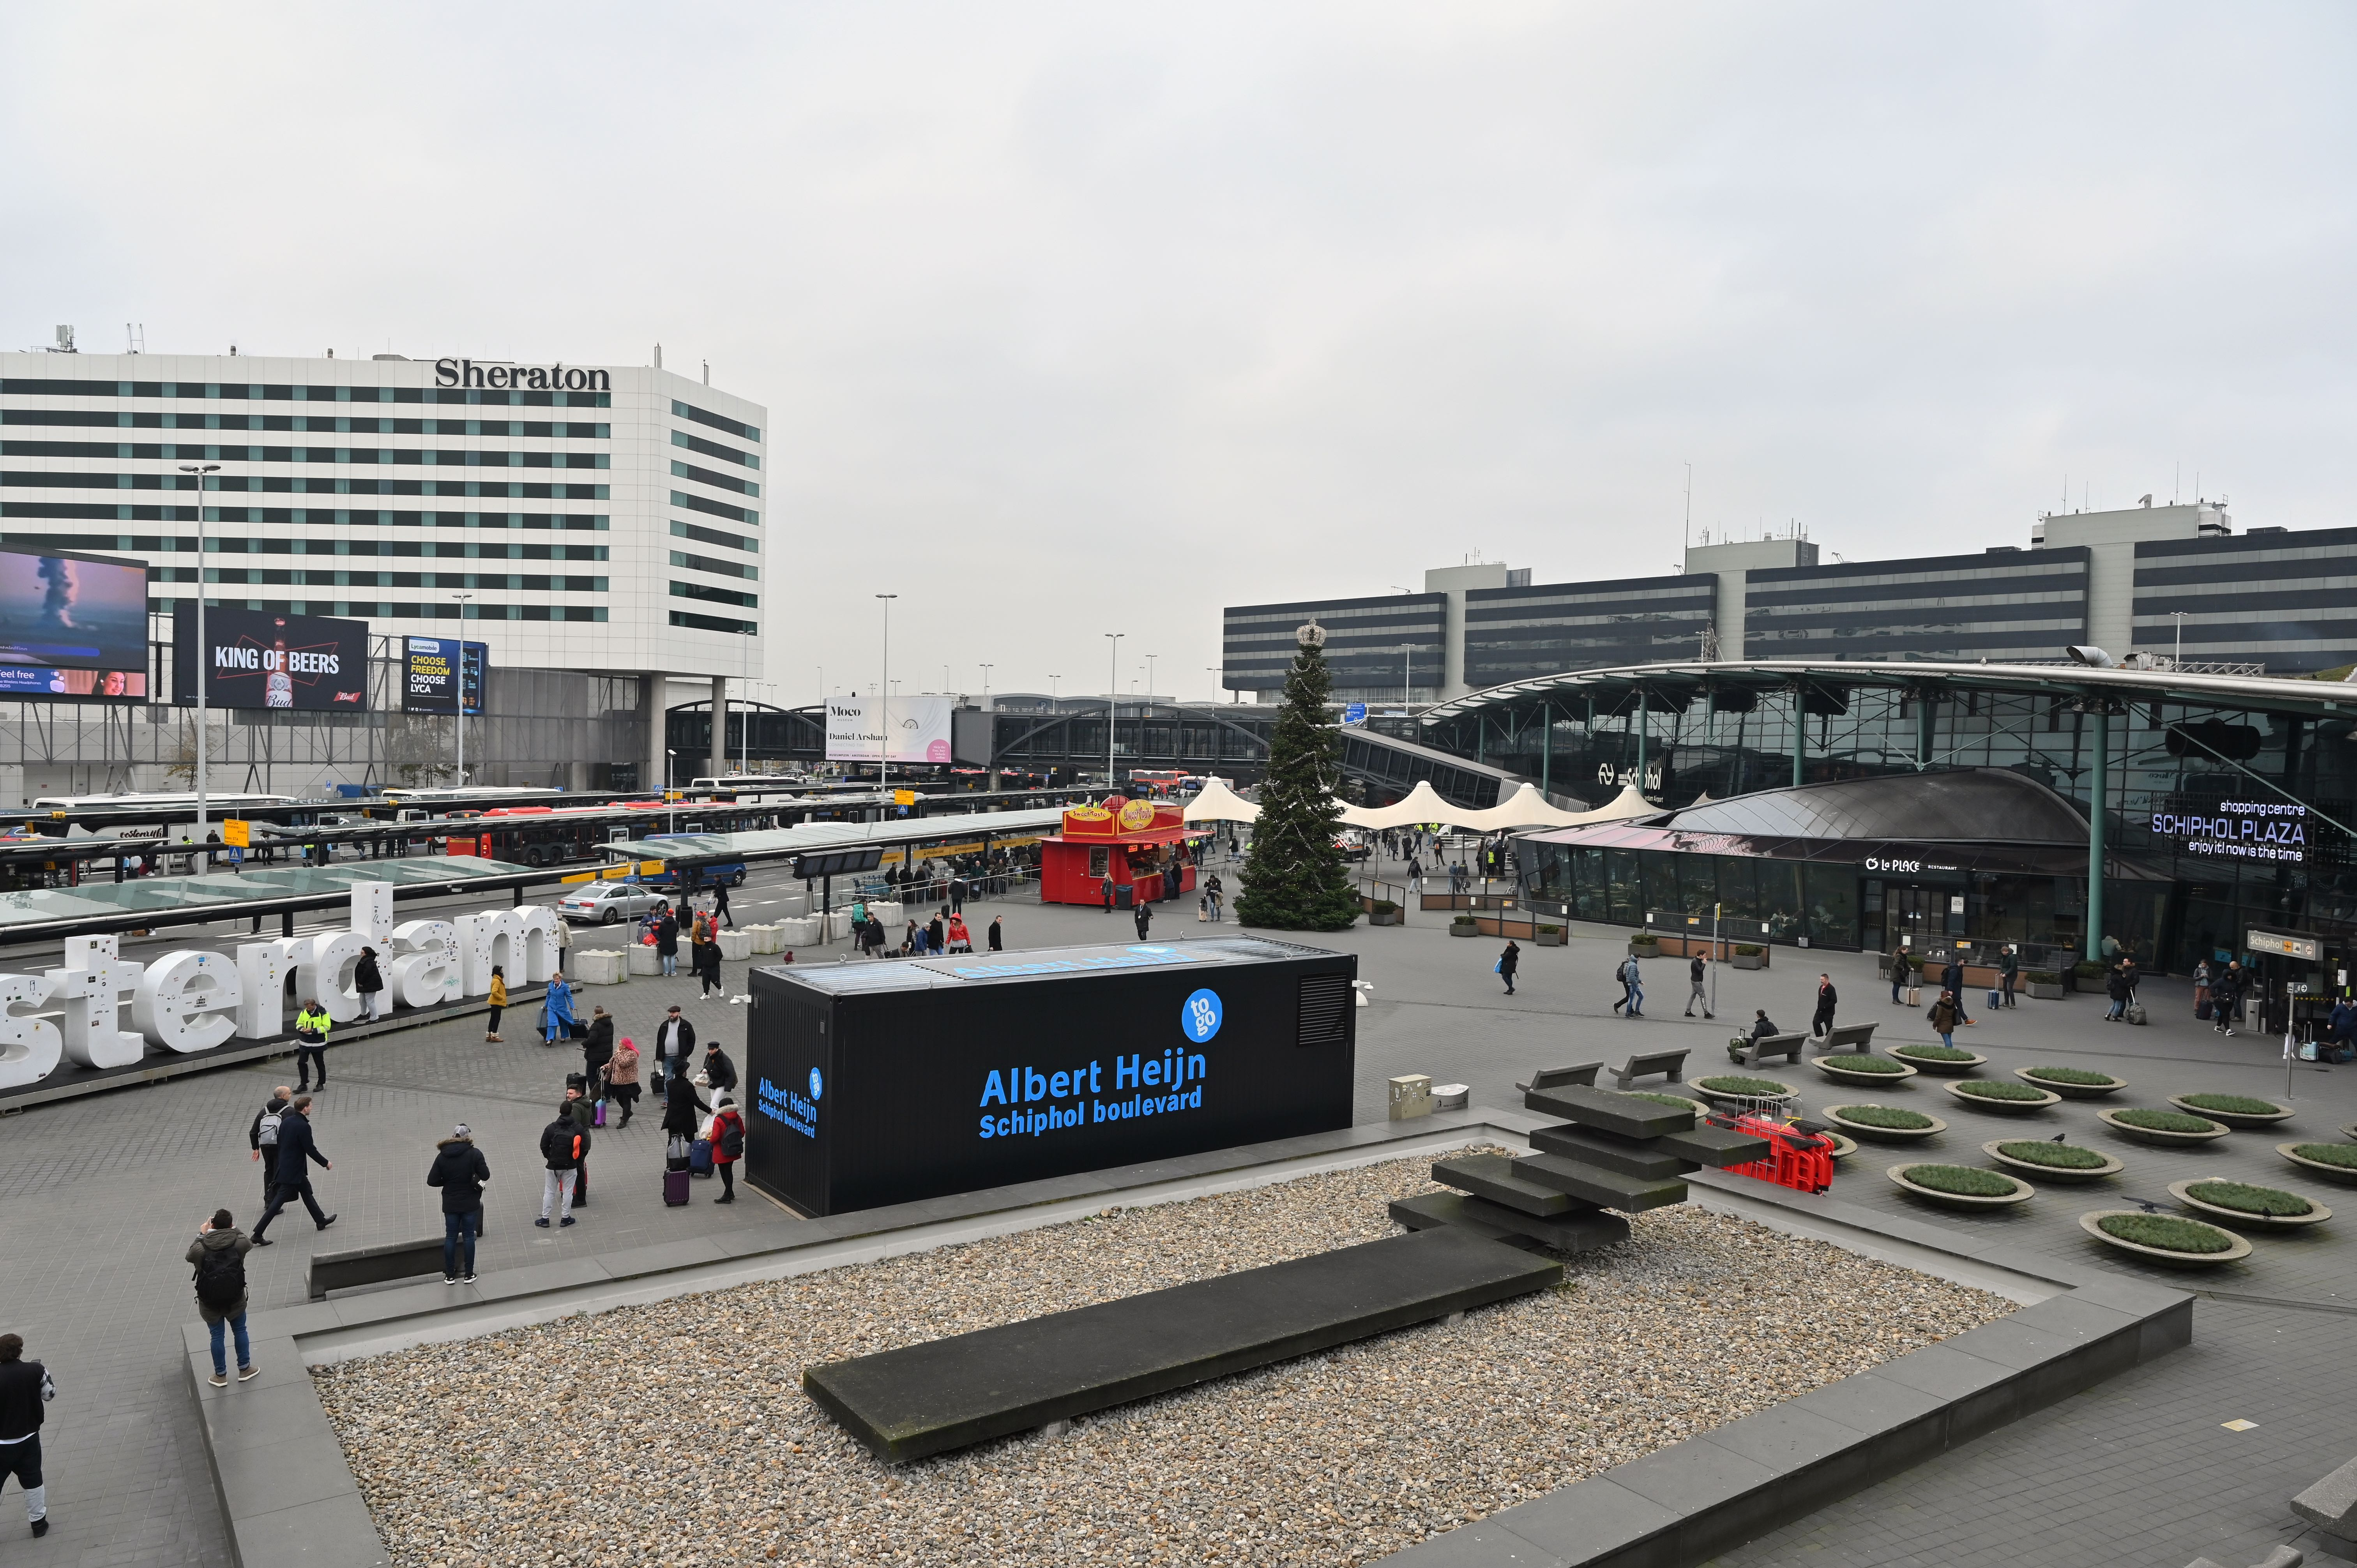 Ahold_Delhaize-AH_To_Go-Schiphol_Plaza.jpg